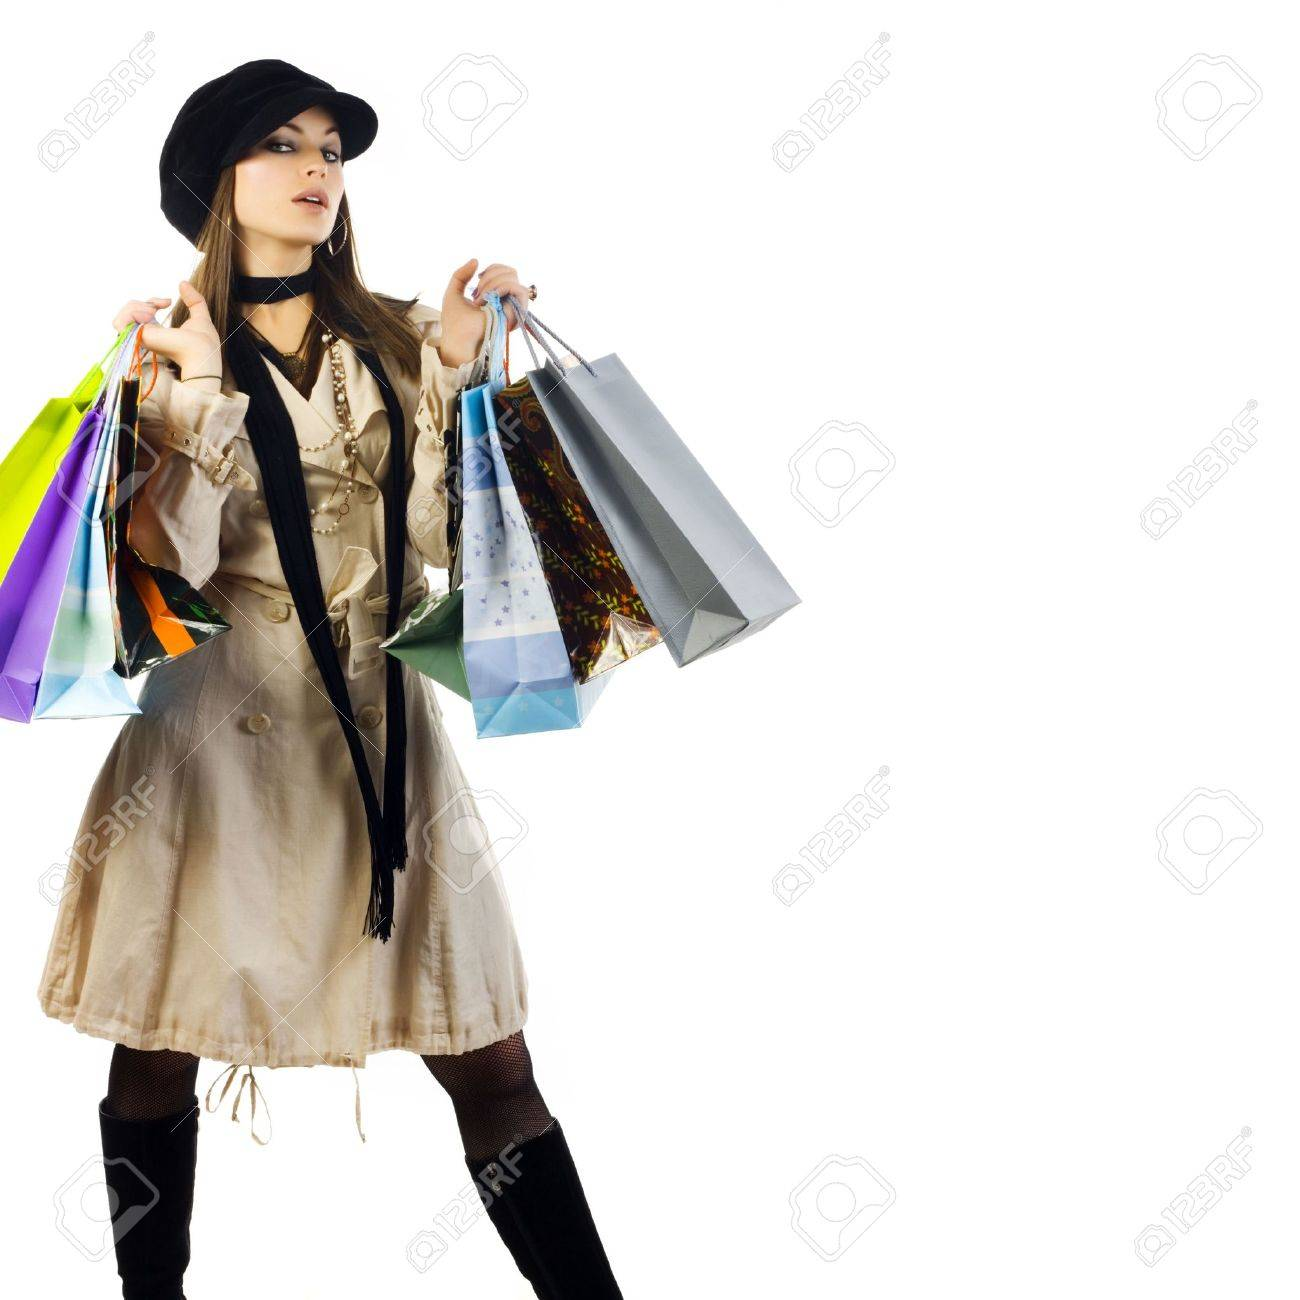 Portrait of young beautiful women with her shopping bags. Isolated on white background Stock Photo - 4356135